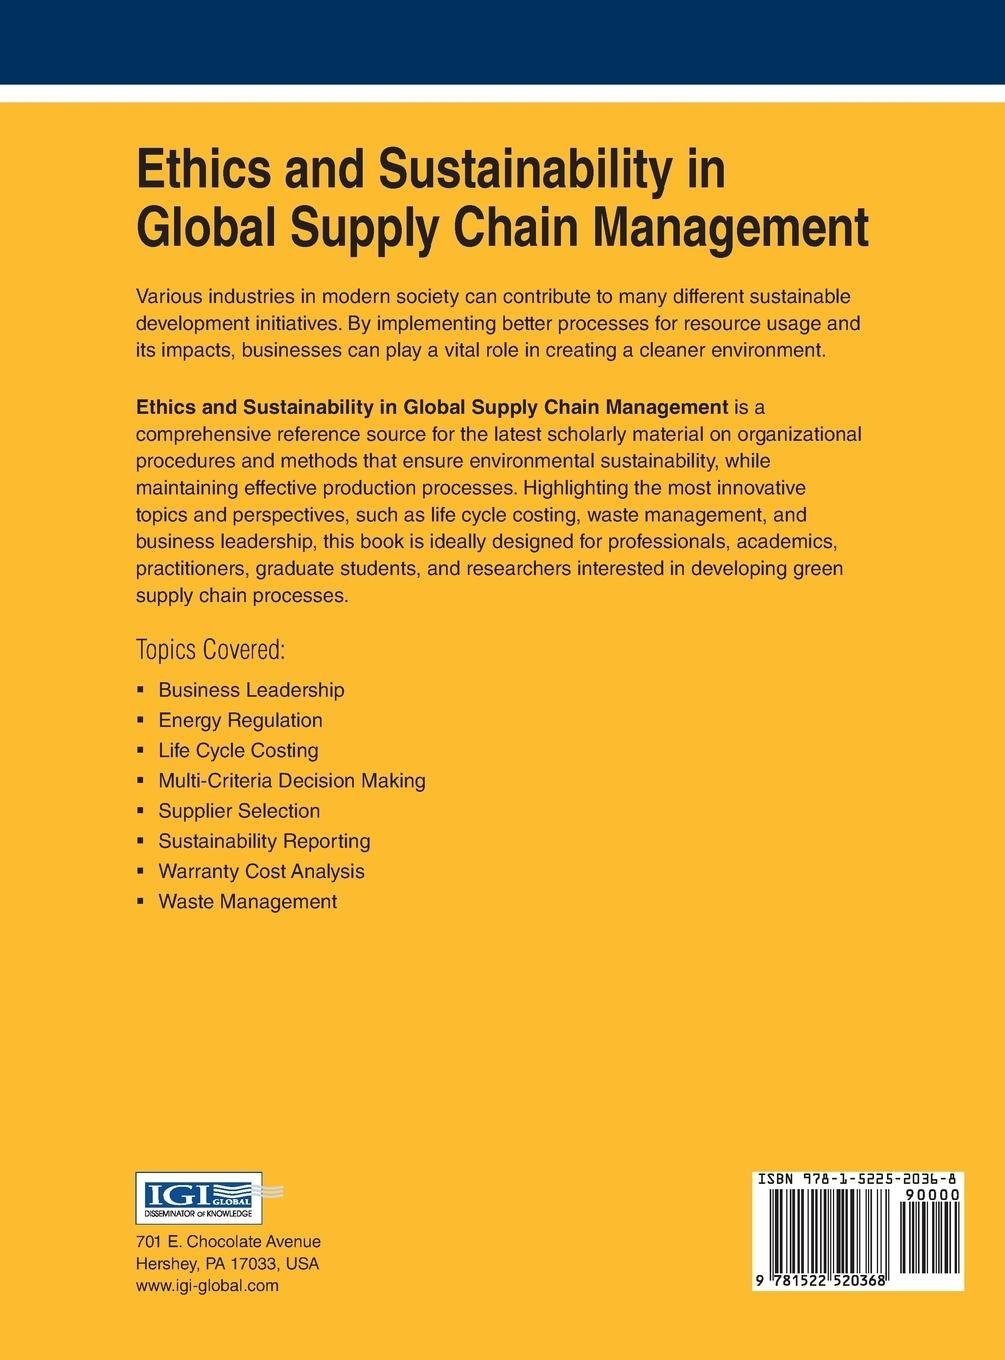 Buy Ethics and Sustainability in Global Supply Chain